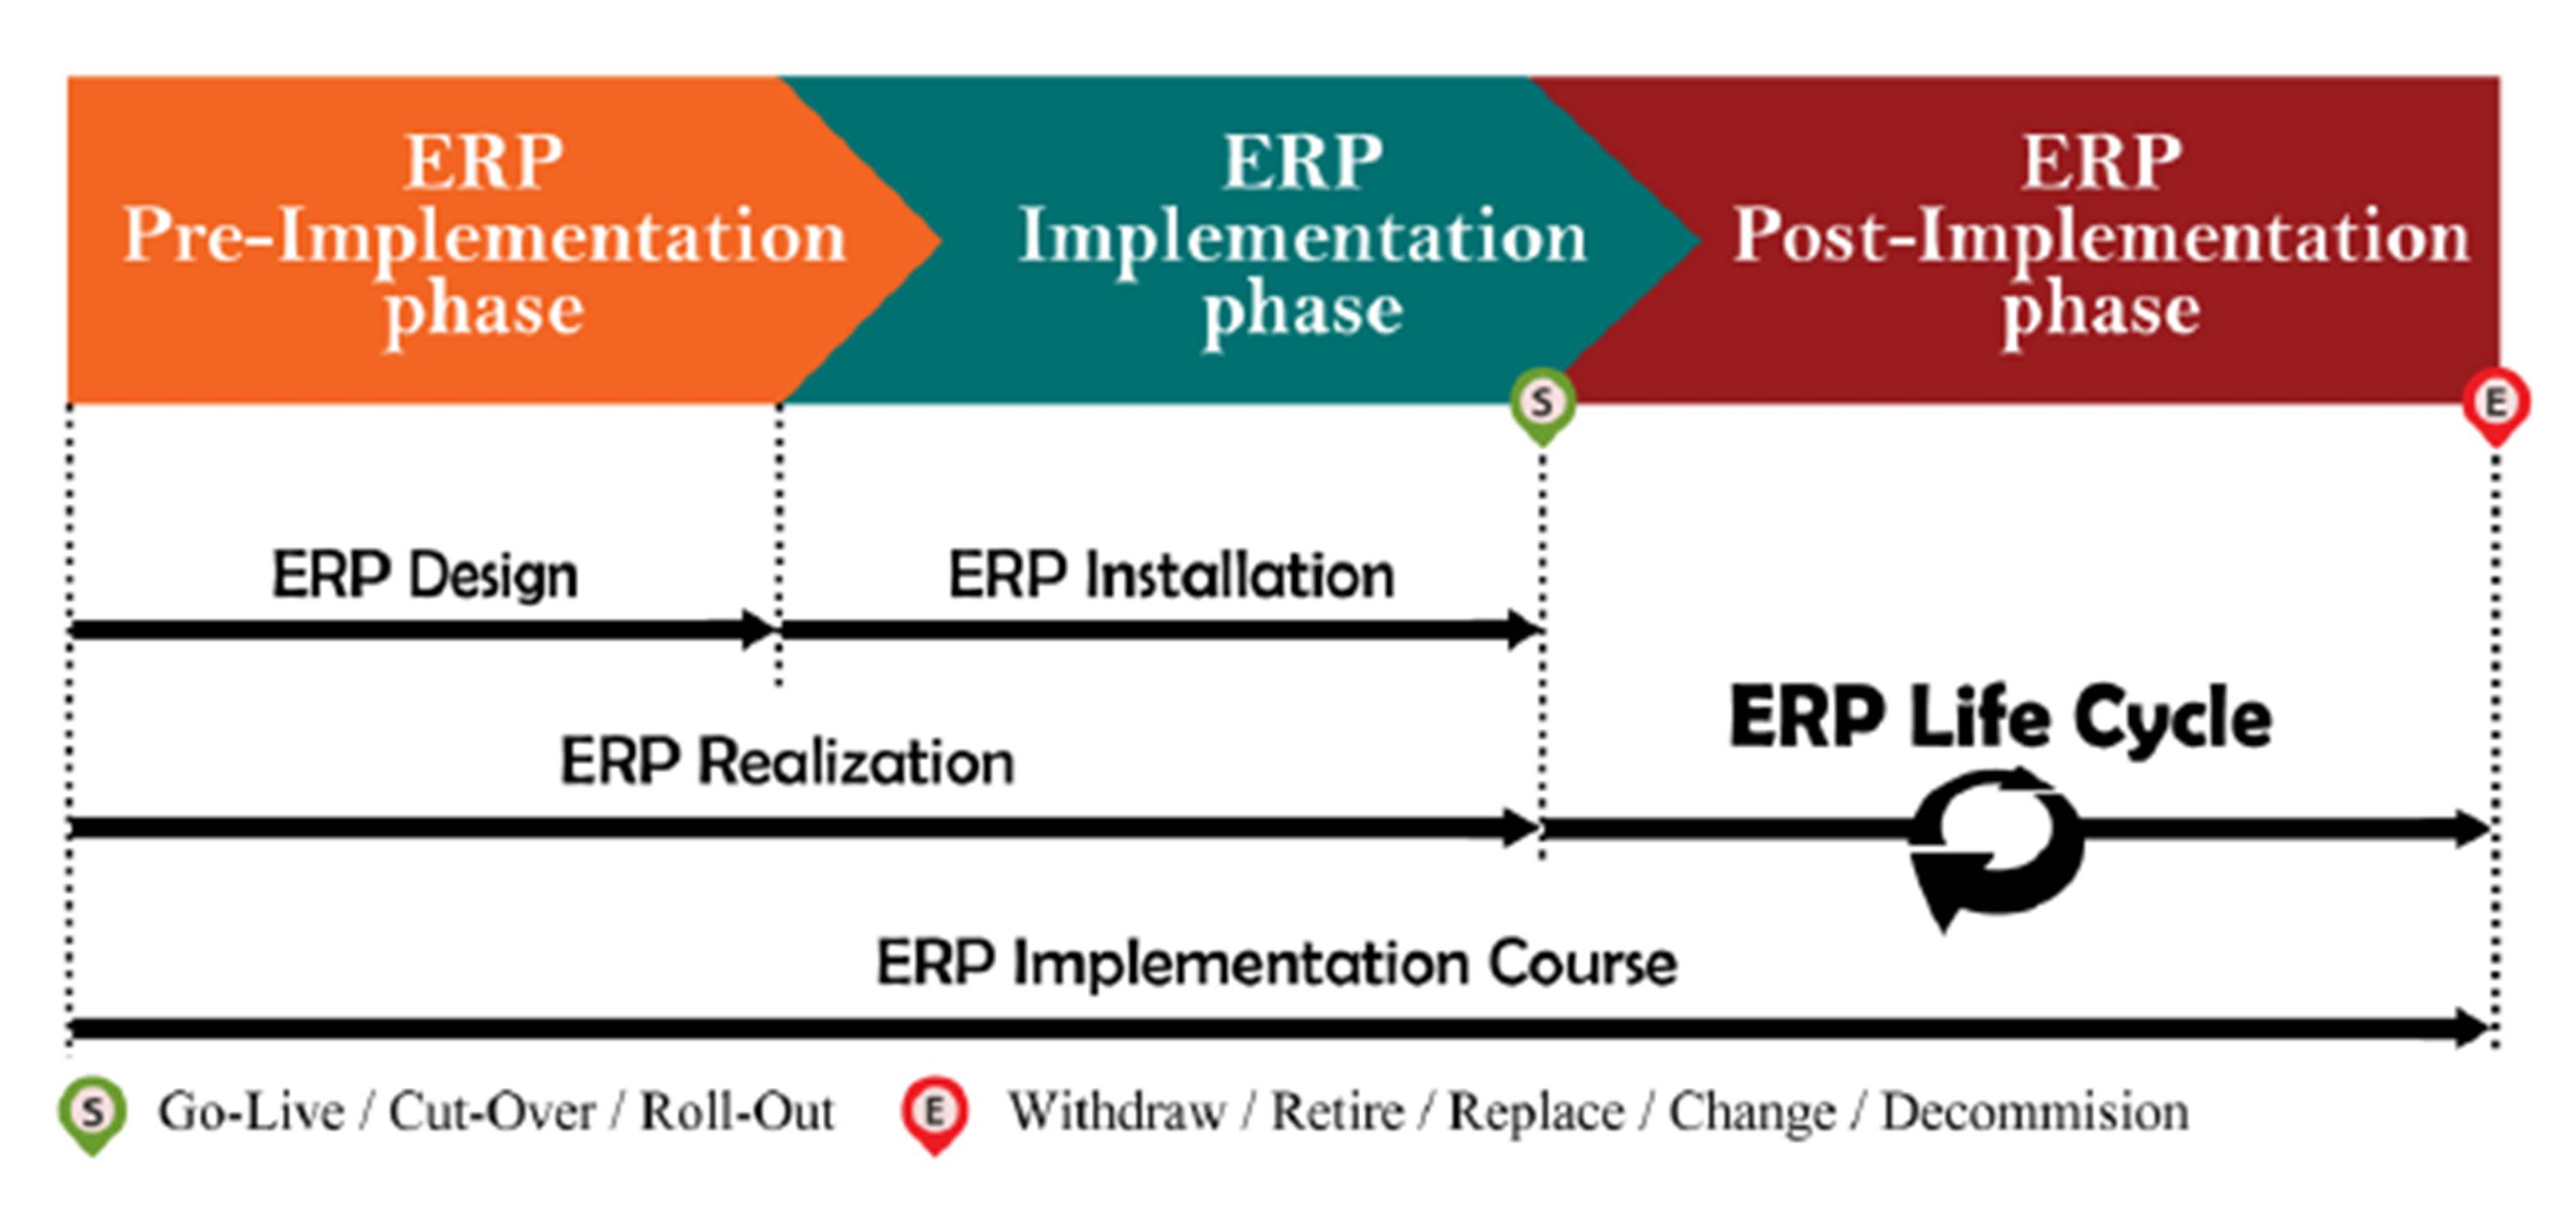 ibima publishing reinventing erp life cycle model from go live to  erp life cycle diagram #9